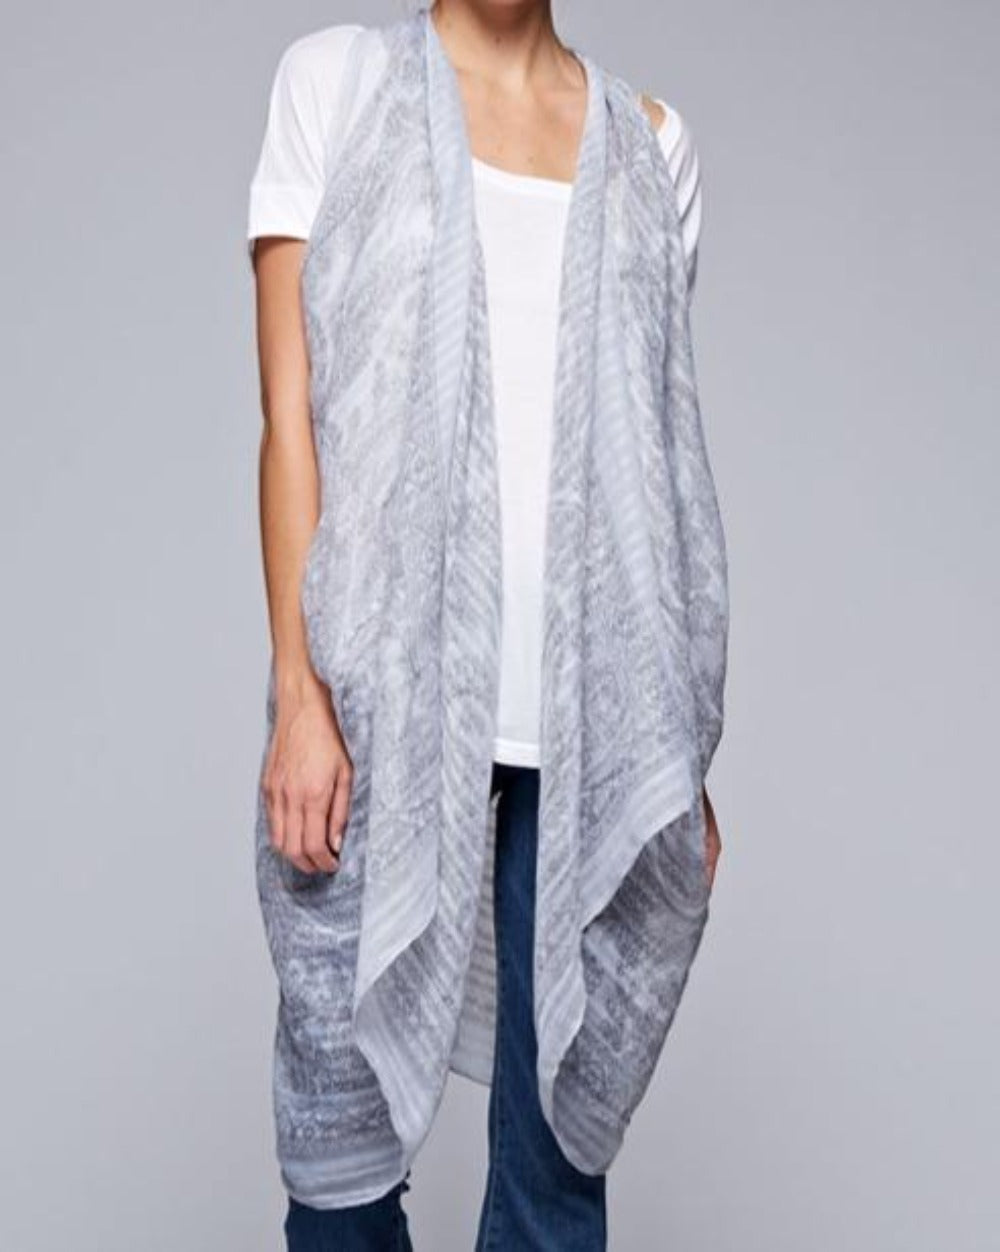 Silver Shadows sheer silver gray patterned lightweight scarf kimono - Sahvant